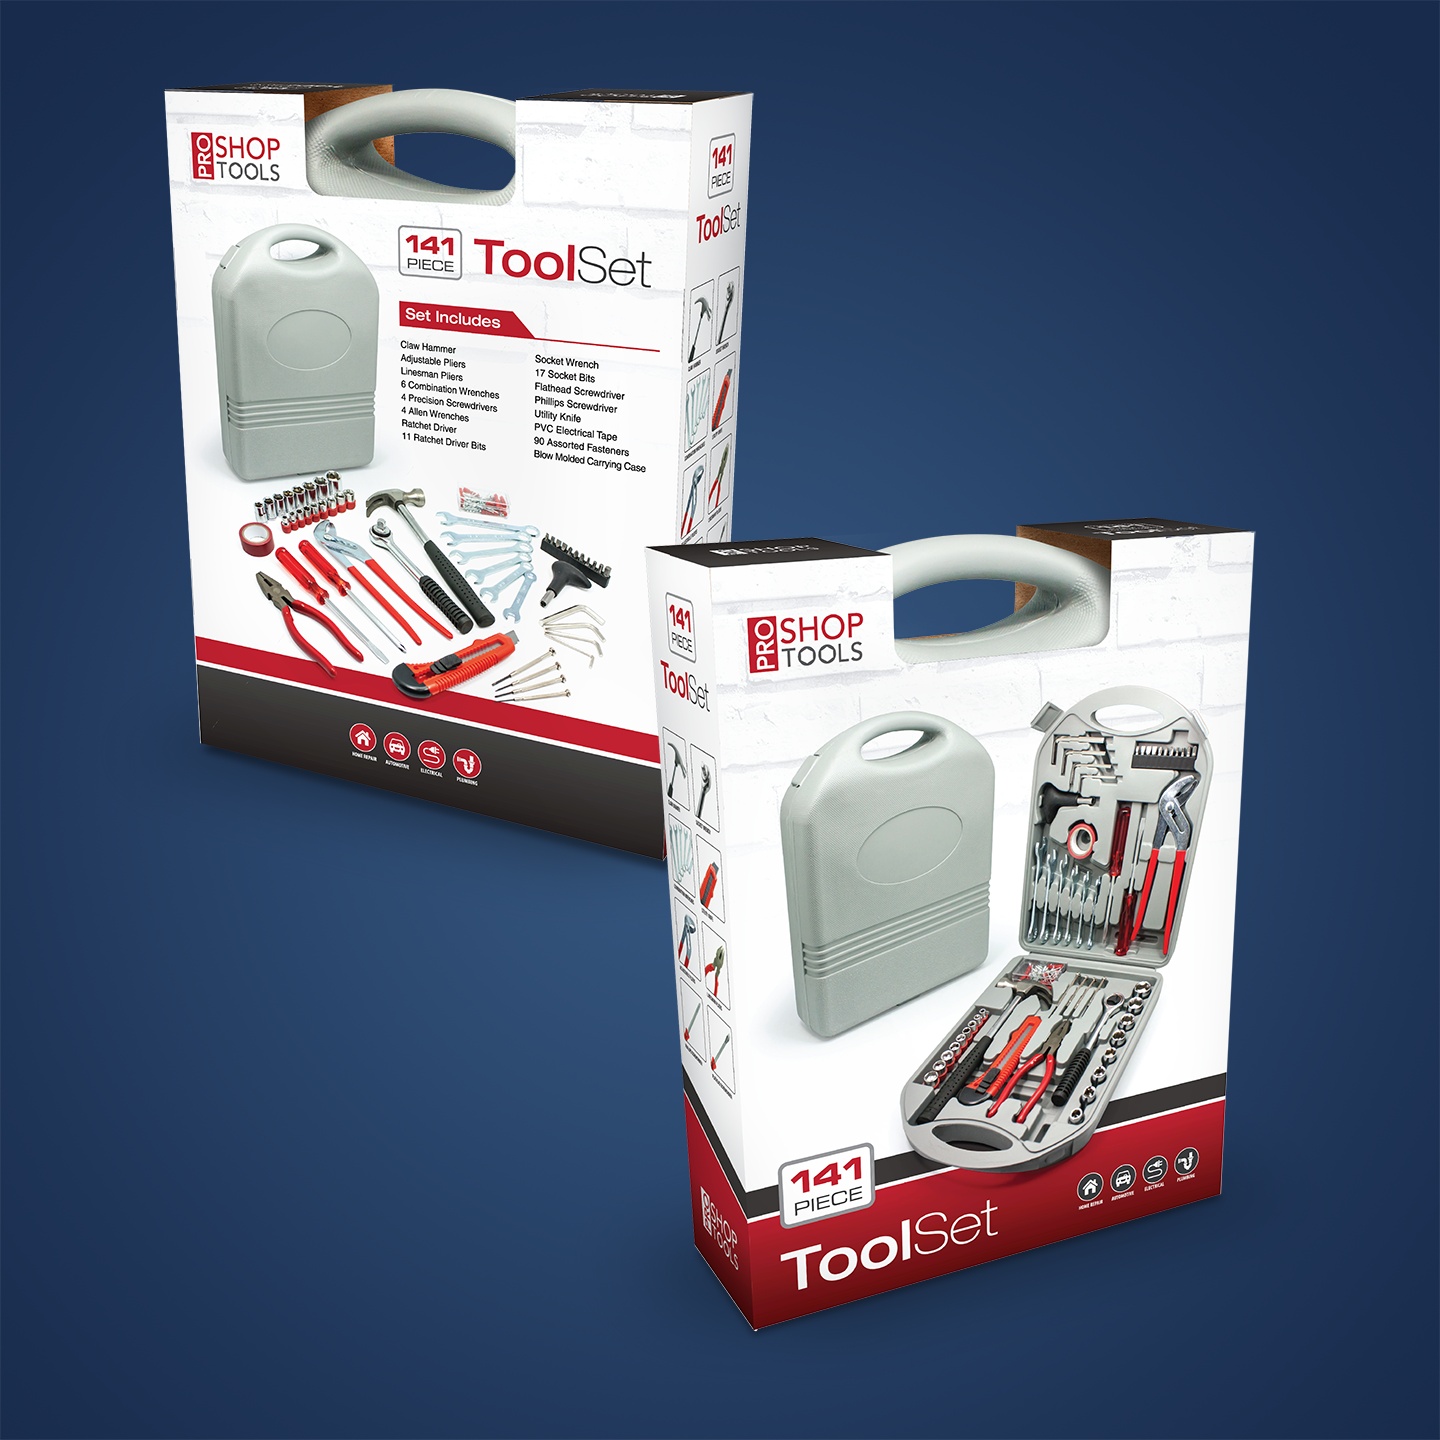 printdsn_packaging-toolset-01v2